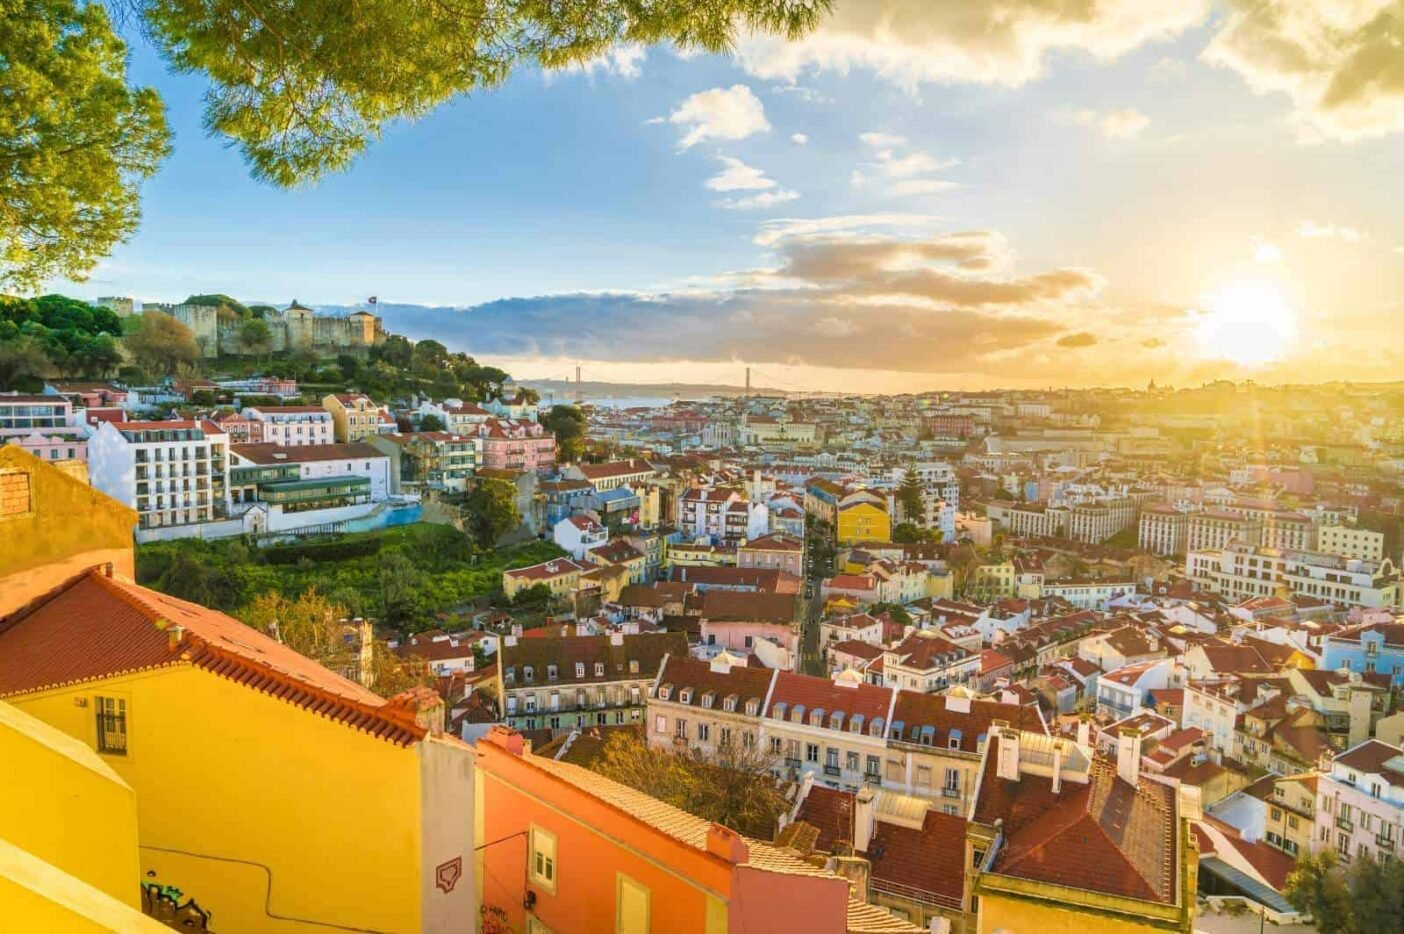 Down the hill view of Lisbon: colourful houses and brown roofs mingled with parks at sunset